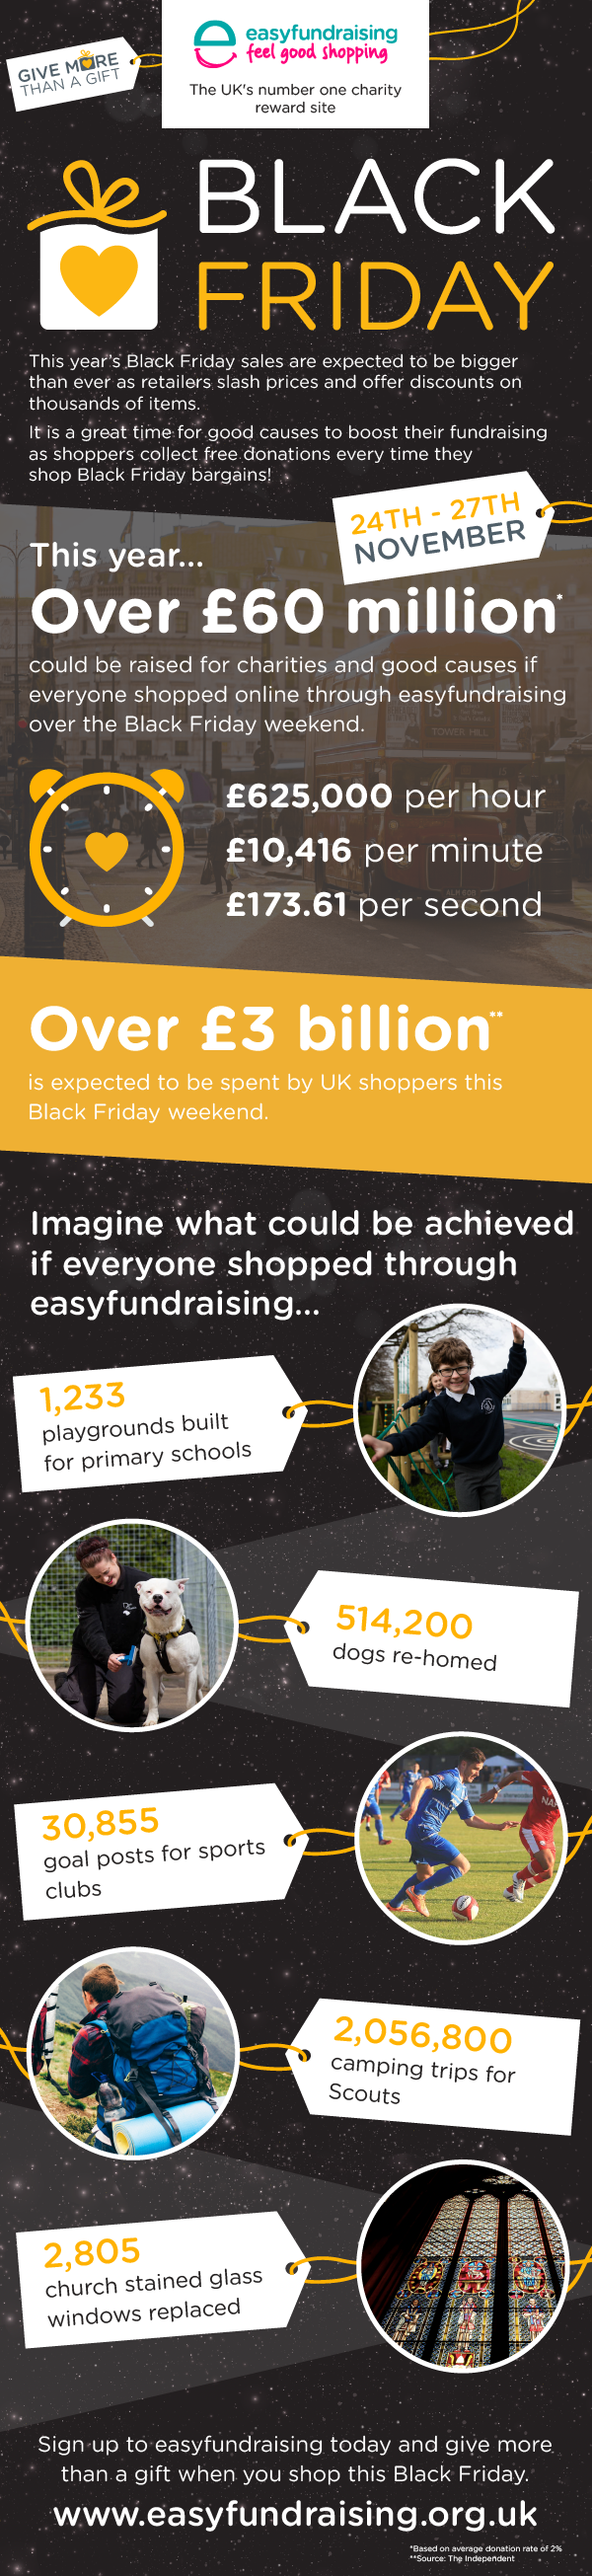 2017_blackfriday_infographic (1)